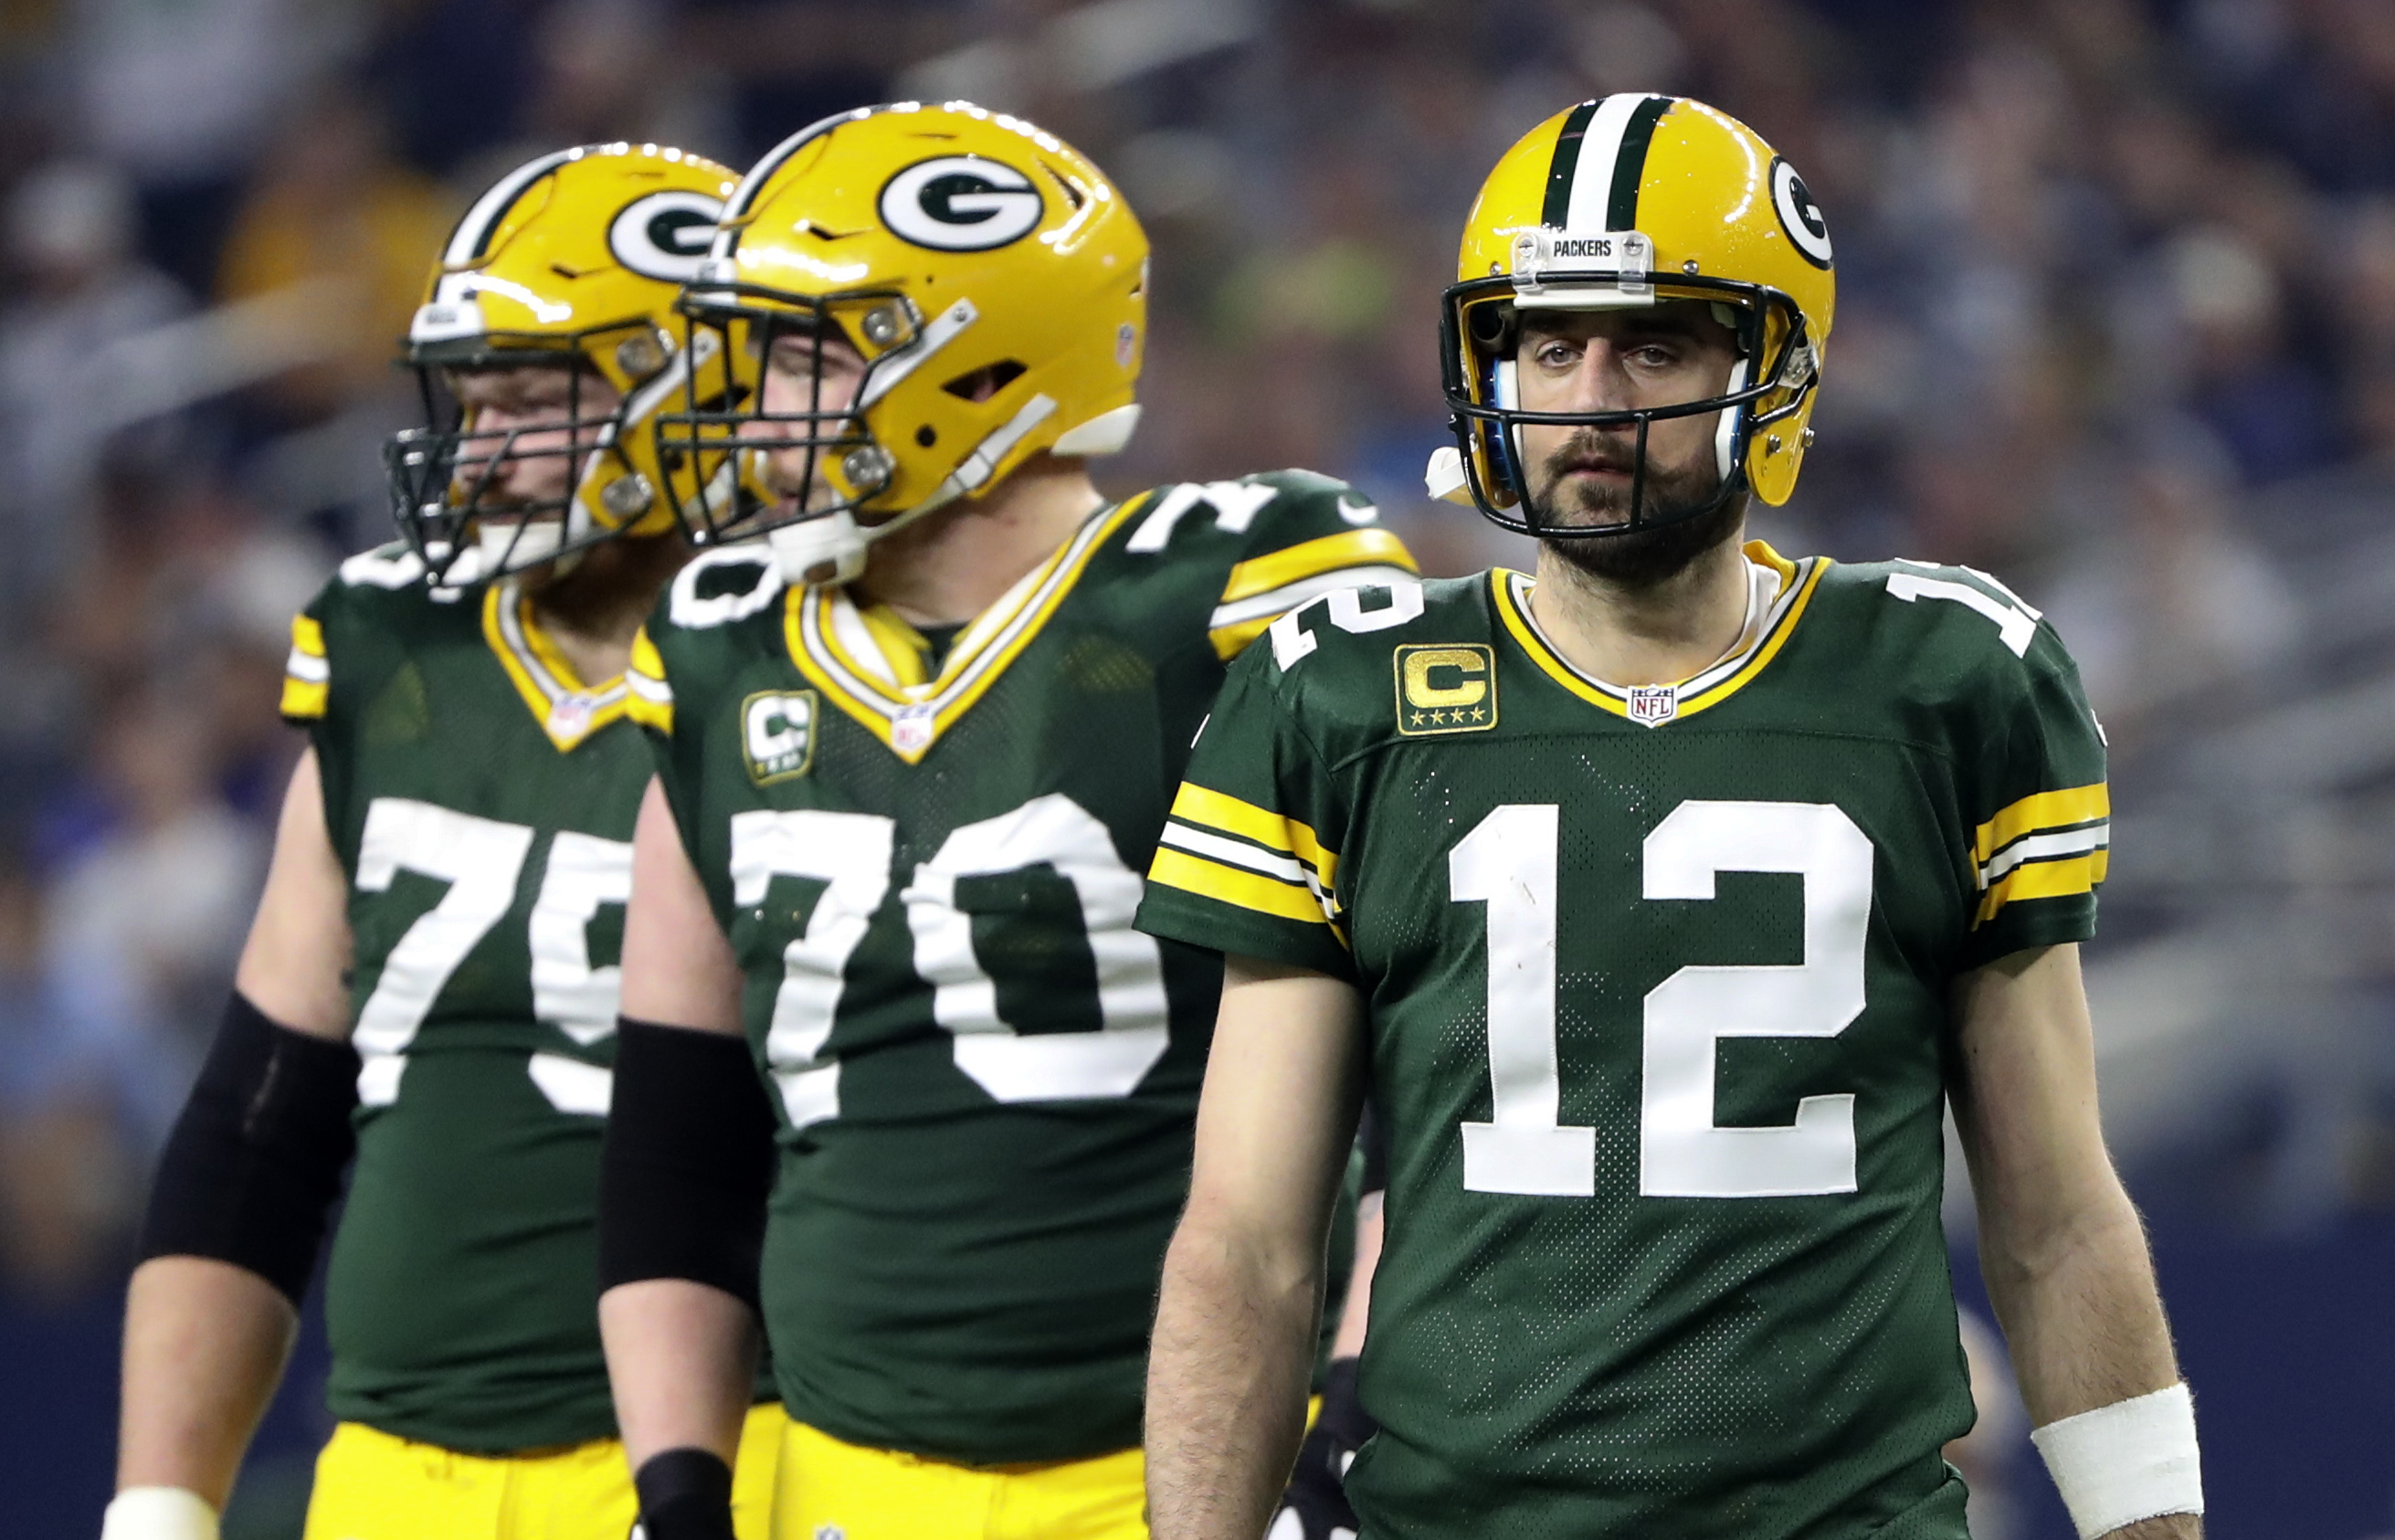 Jan 15, 2017; Arlington, TX, USA; Green Bay Packers quarterback Aaron Rodgers (12) and guard T.J. Lang (70) in action during the game against the Dallas Cowboys in the NFC Divisional playoff game at AT&T Stadium. Mandatory Credit: Kevin Jairaj-USA TODAY Sports